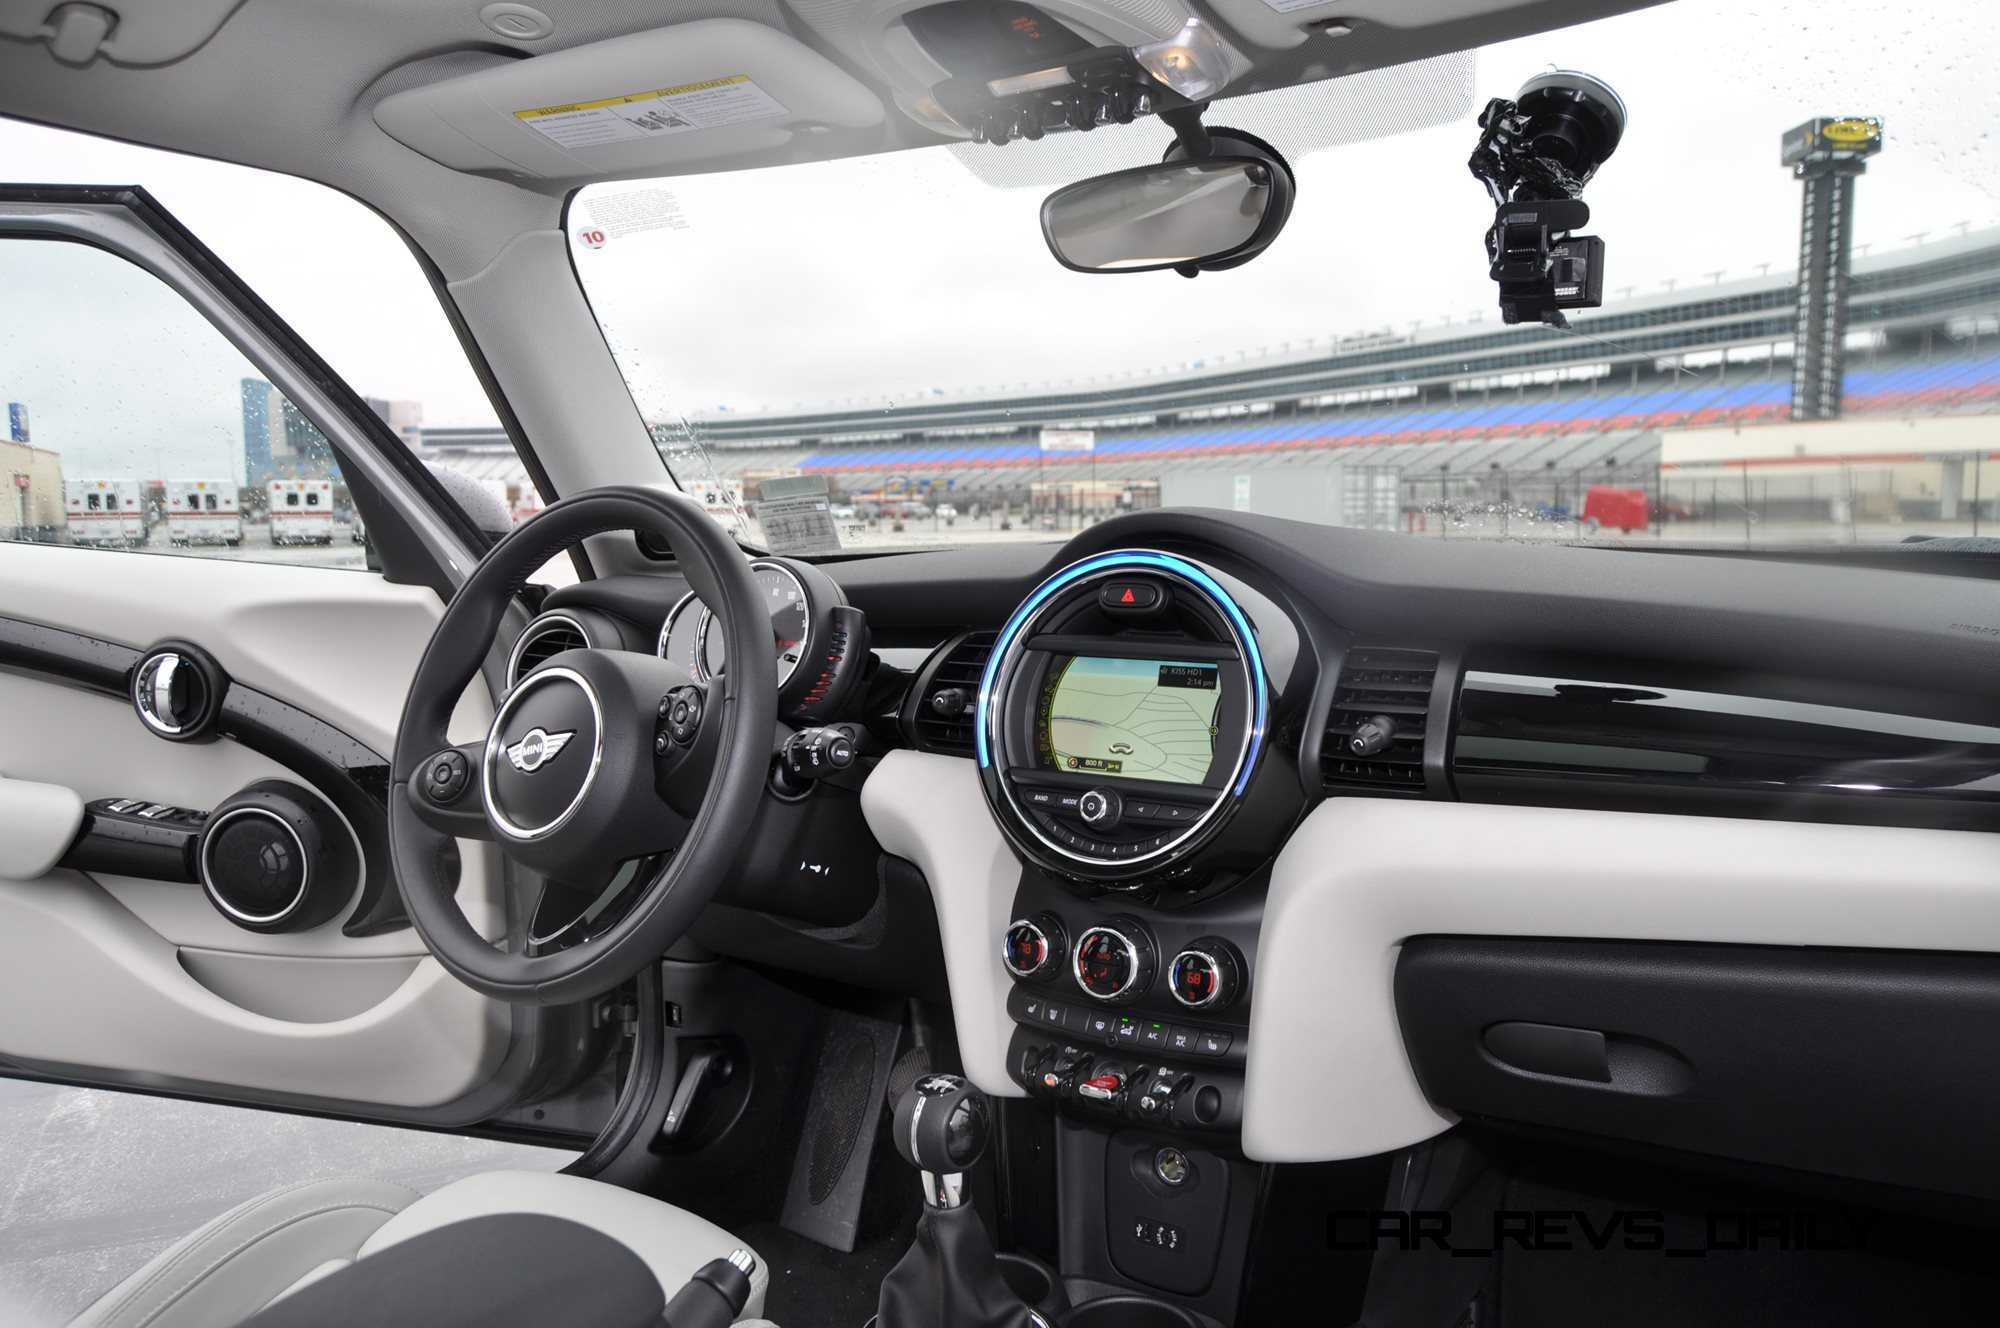 2015 MINI Cooper S Hardtop 4-Door Interior 13